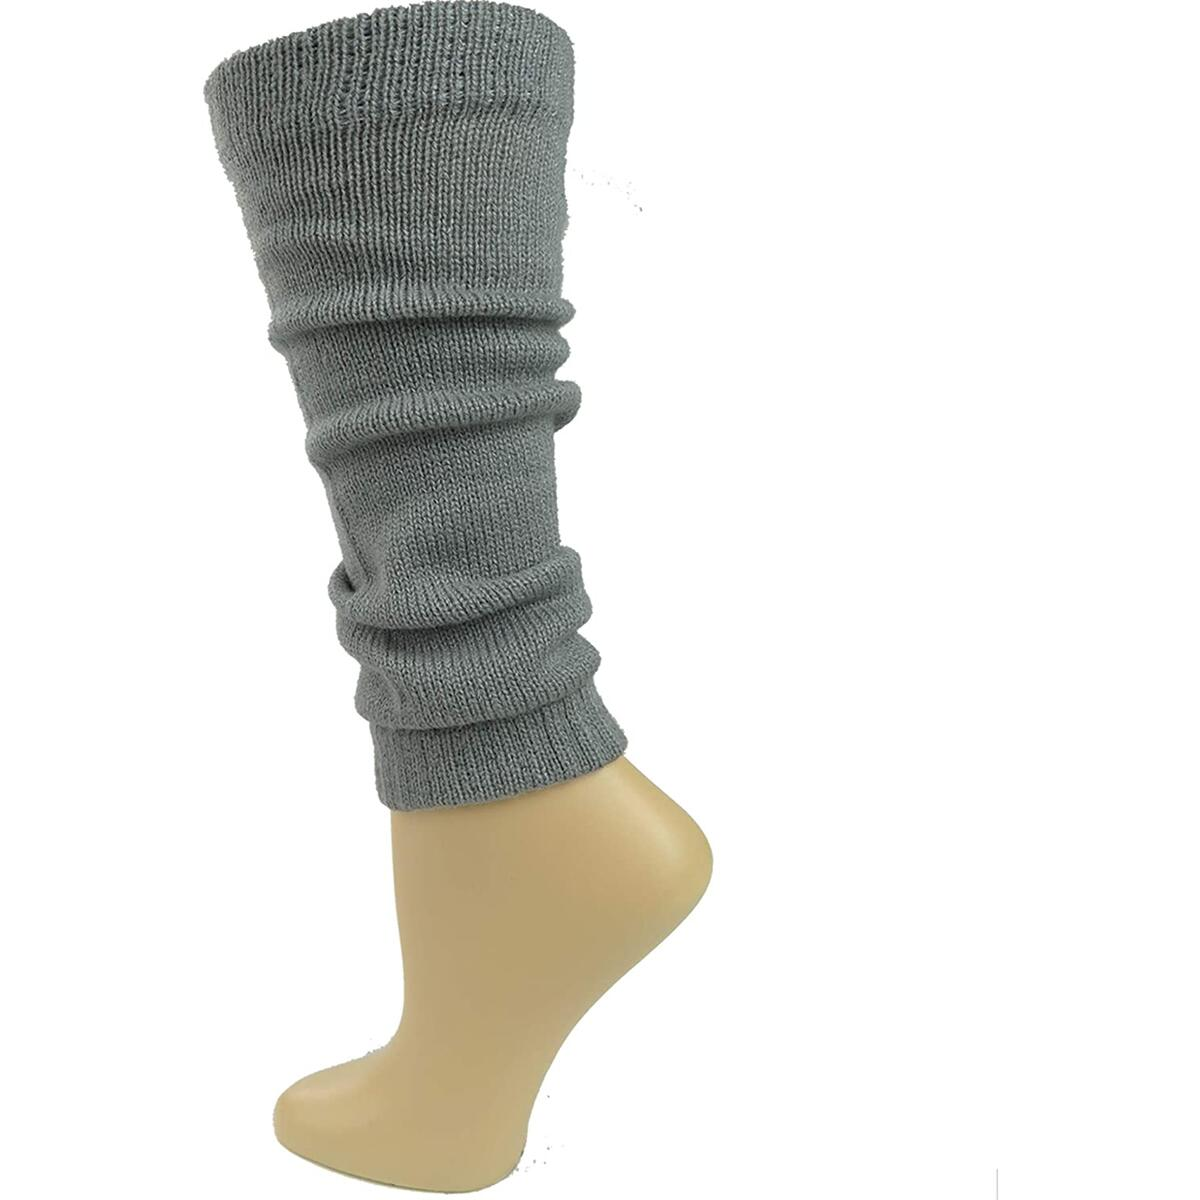 Debra Weitzner Womens Knit Leg Warmers Ribbed Knee High Leg Warmers for Party and Sports 6 Pairs assorted 1